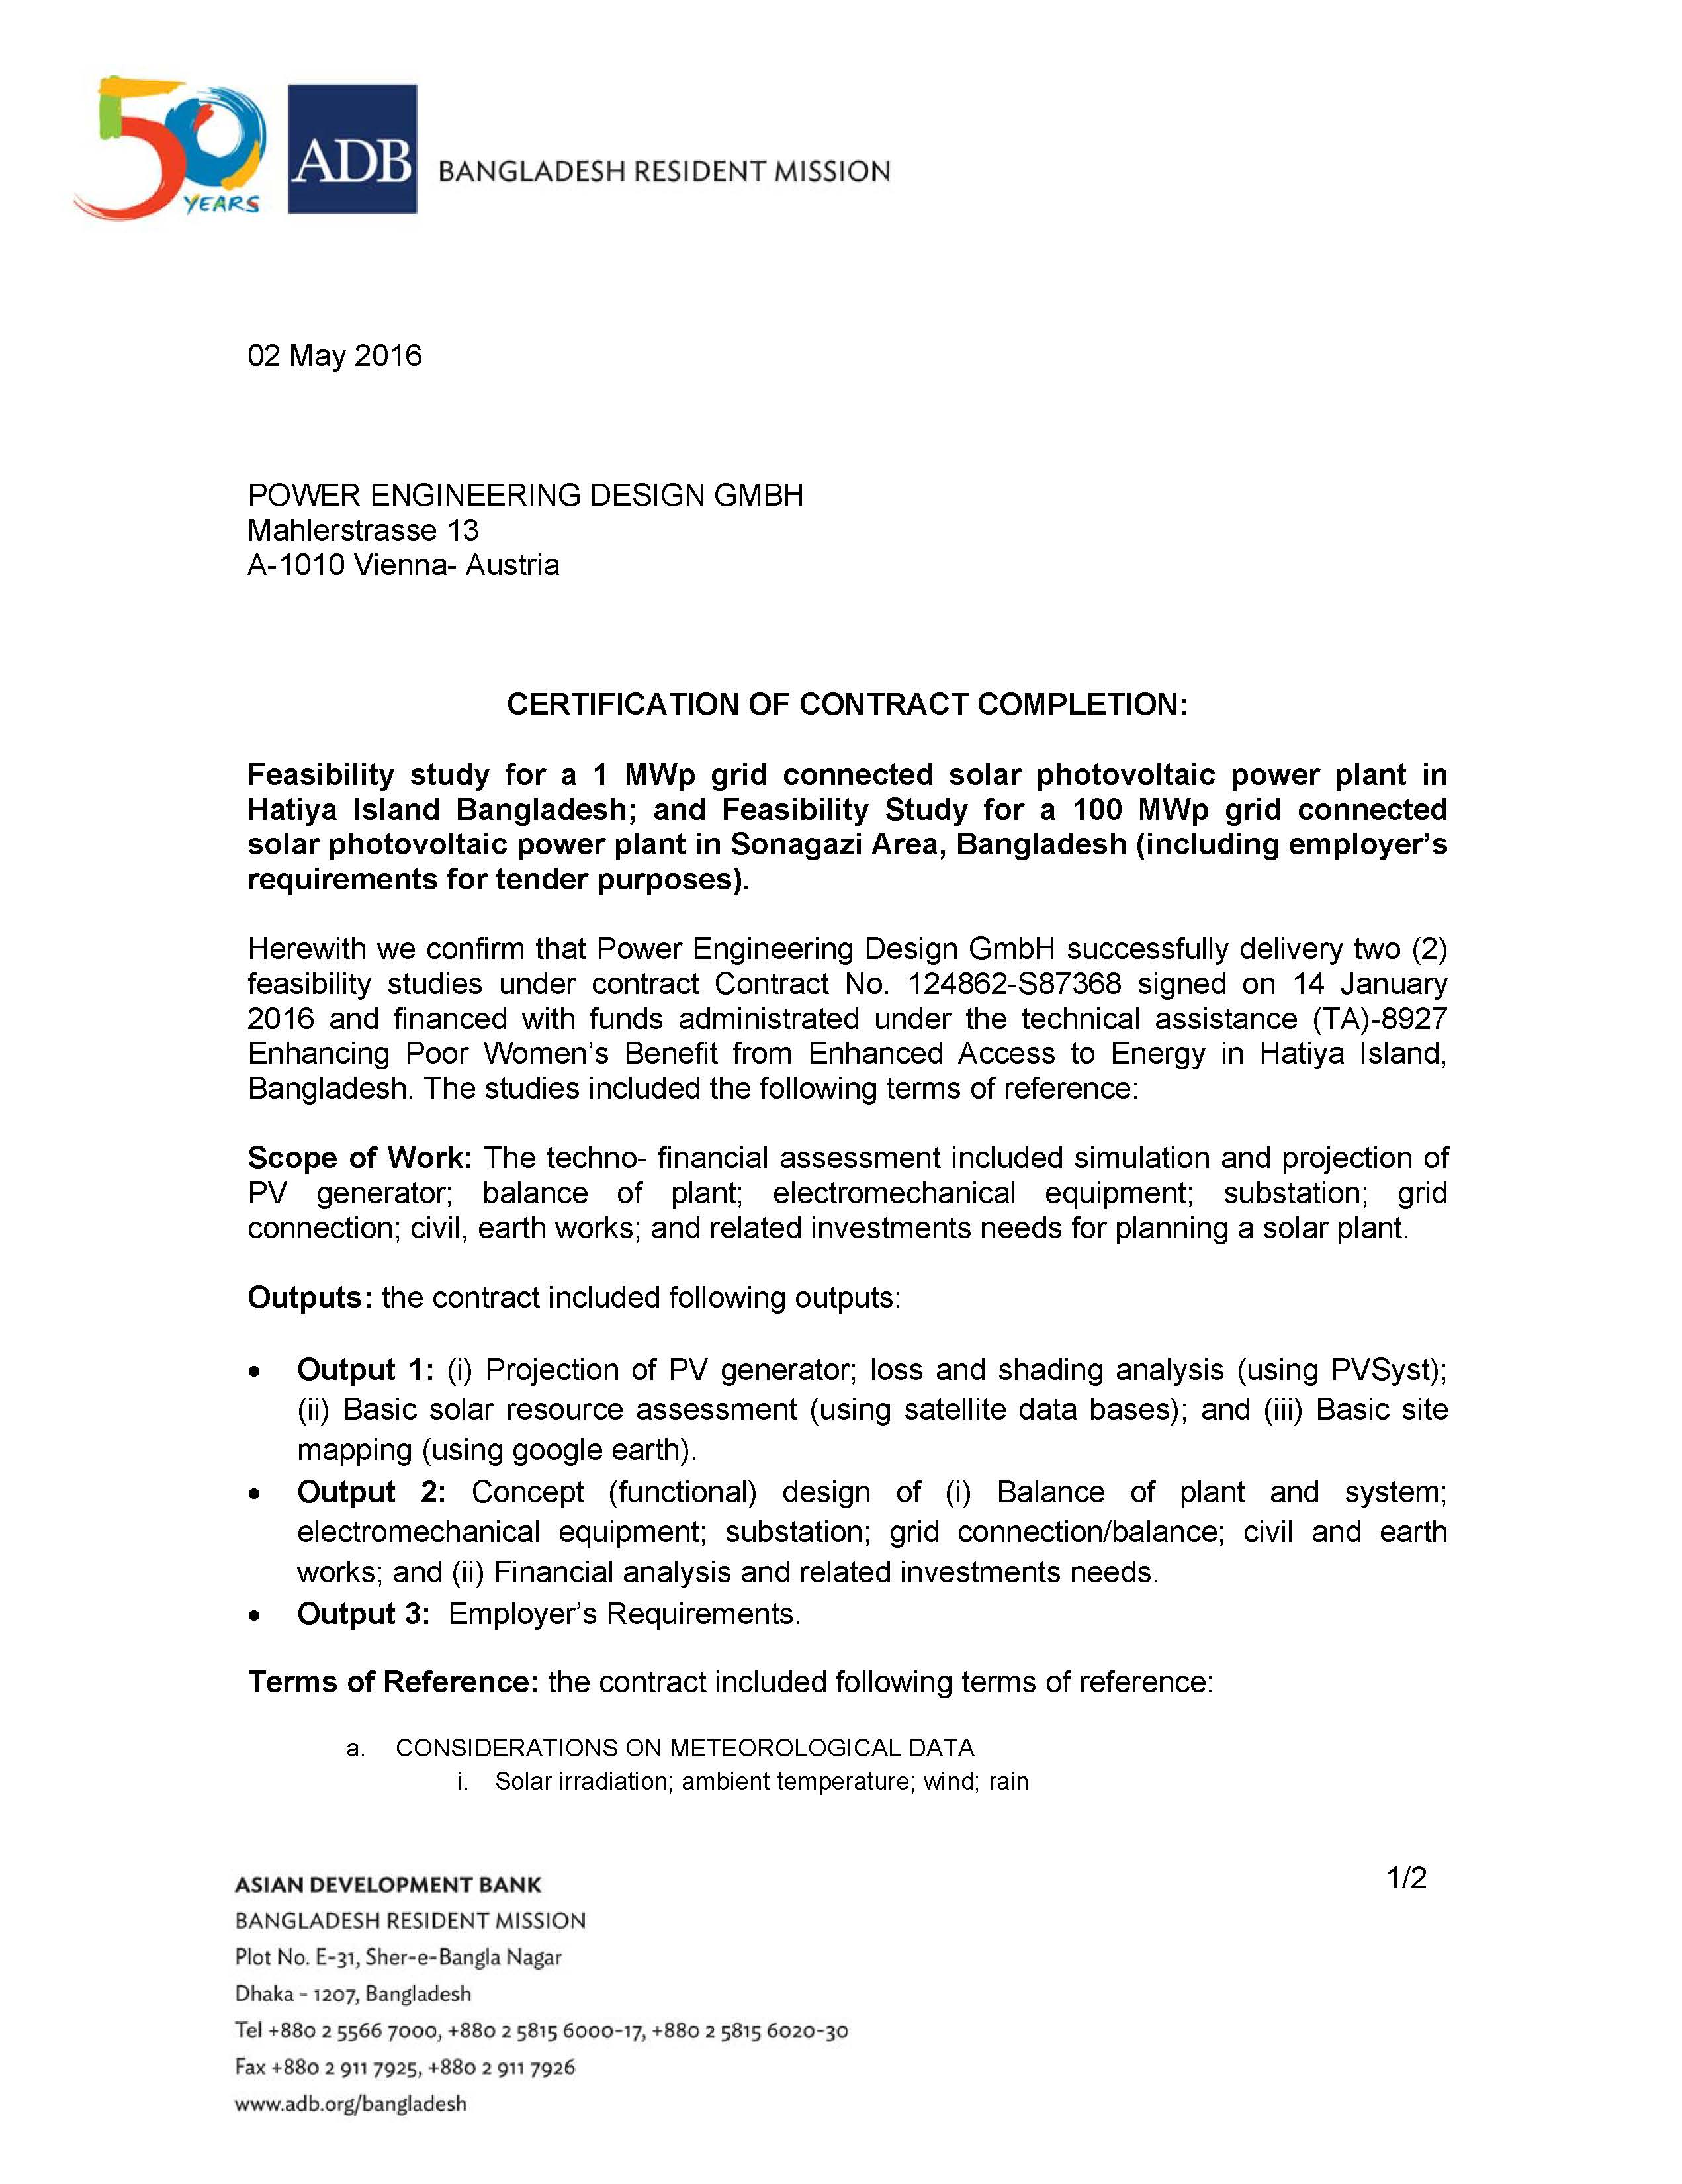 ped-certificate-of-fs-solar-power-plant-hatiya-02-05-16_page_1